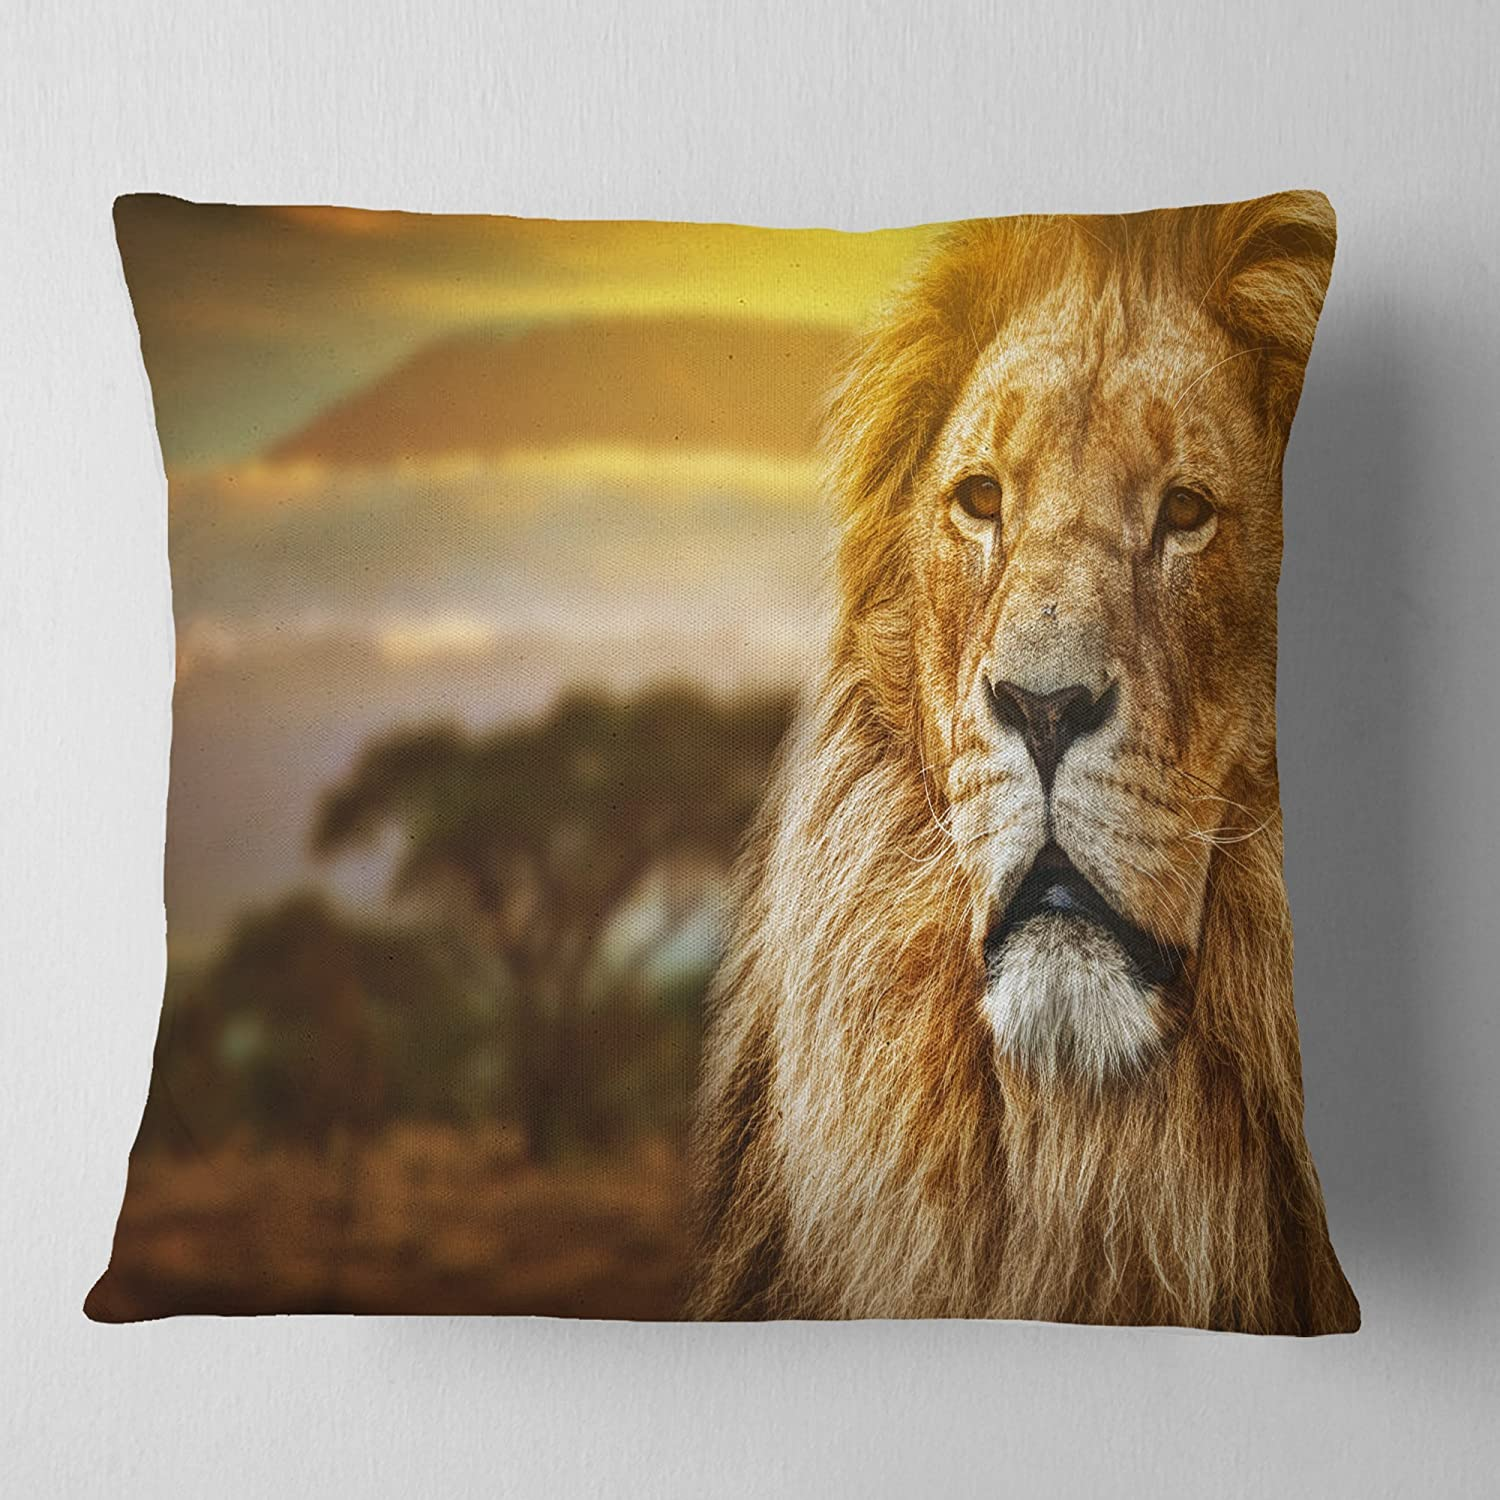 Designart CU7162-18-18 Lion and Mount Kilimanjaro' Animal Cushion Cover for Living Room, Sofa Throw Pillow 18 in. x 18 in. in, Insert Printed On Both Side